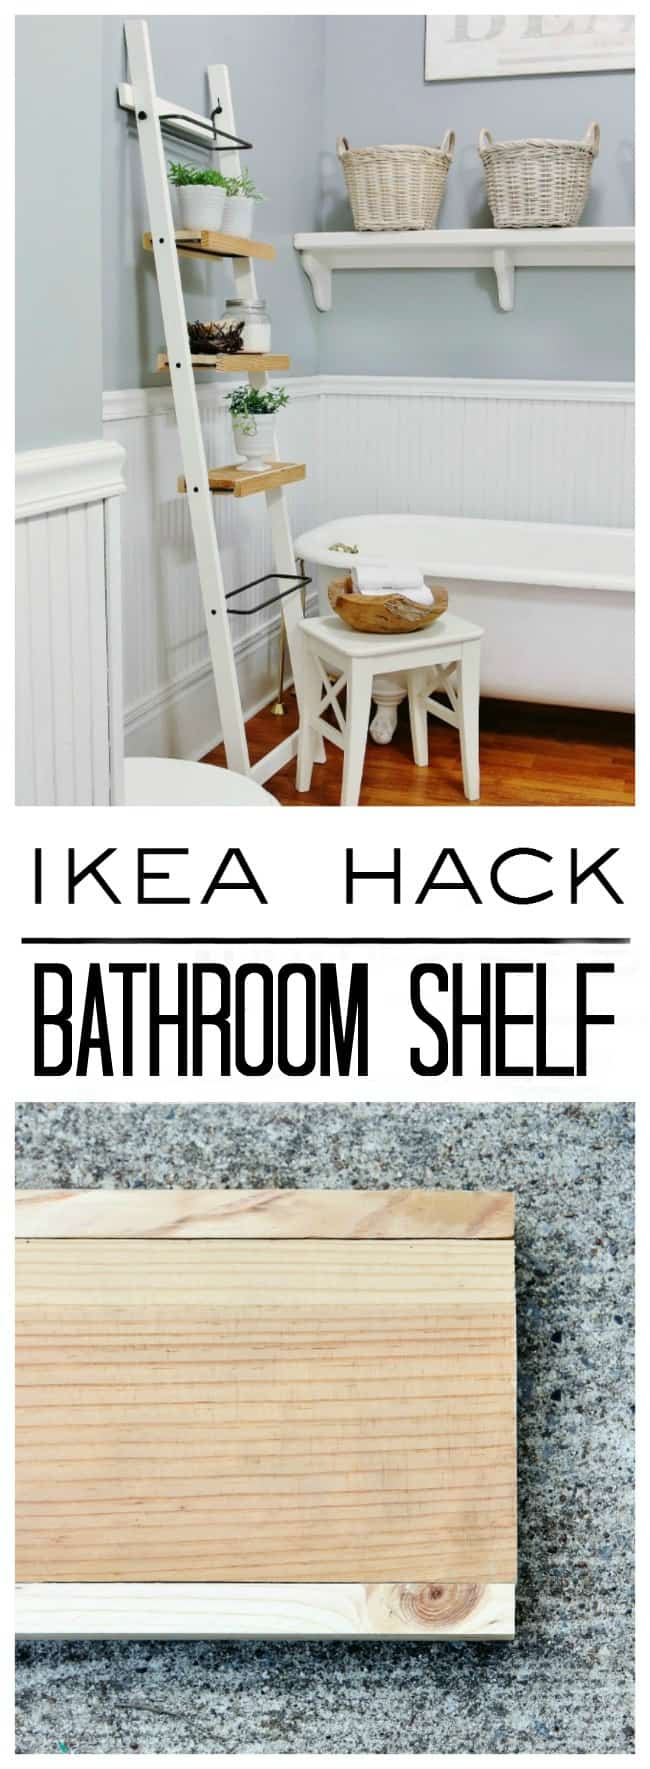 DIY IKEA hack for your bathroom